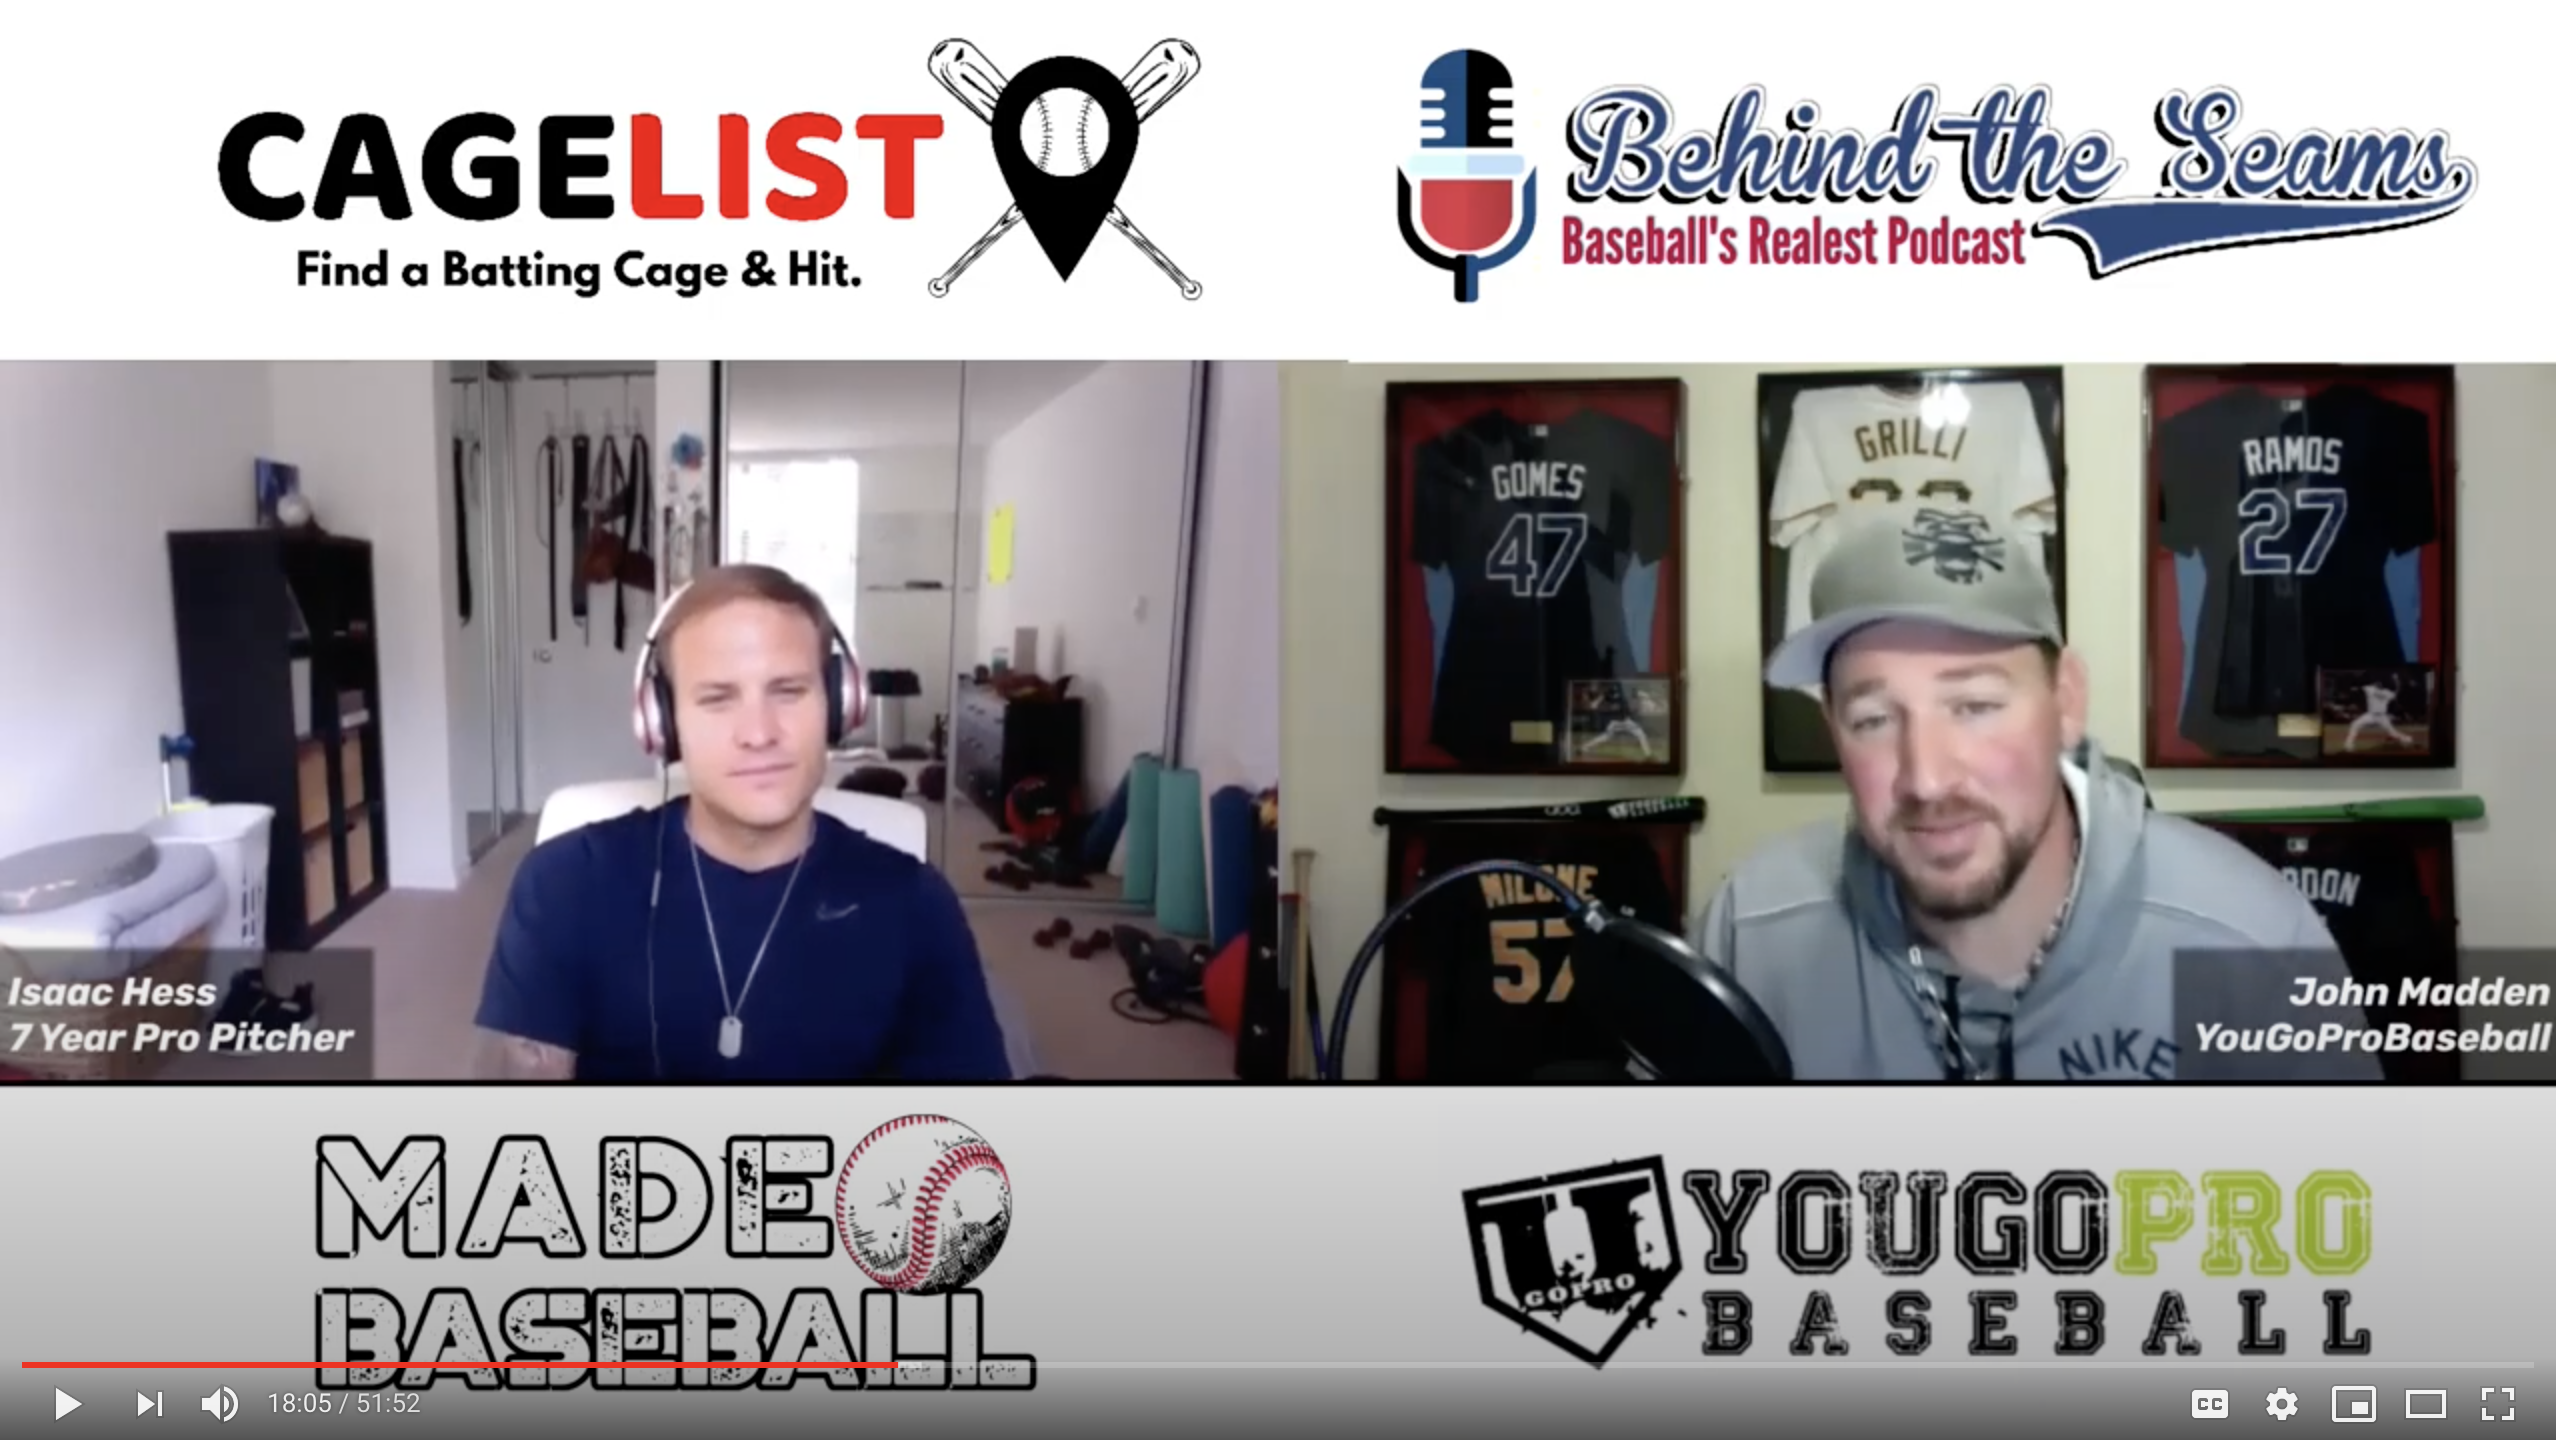 CageList and YouGoPro Baseball